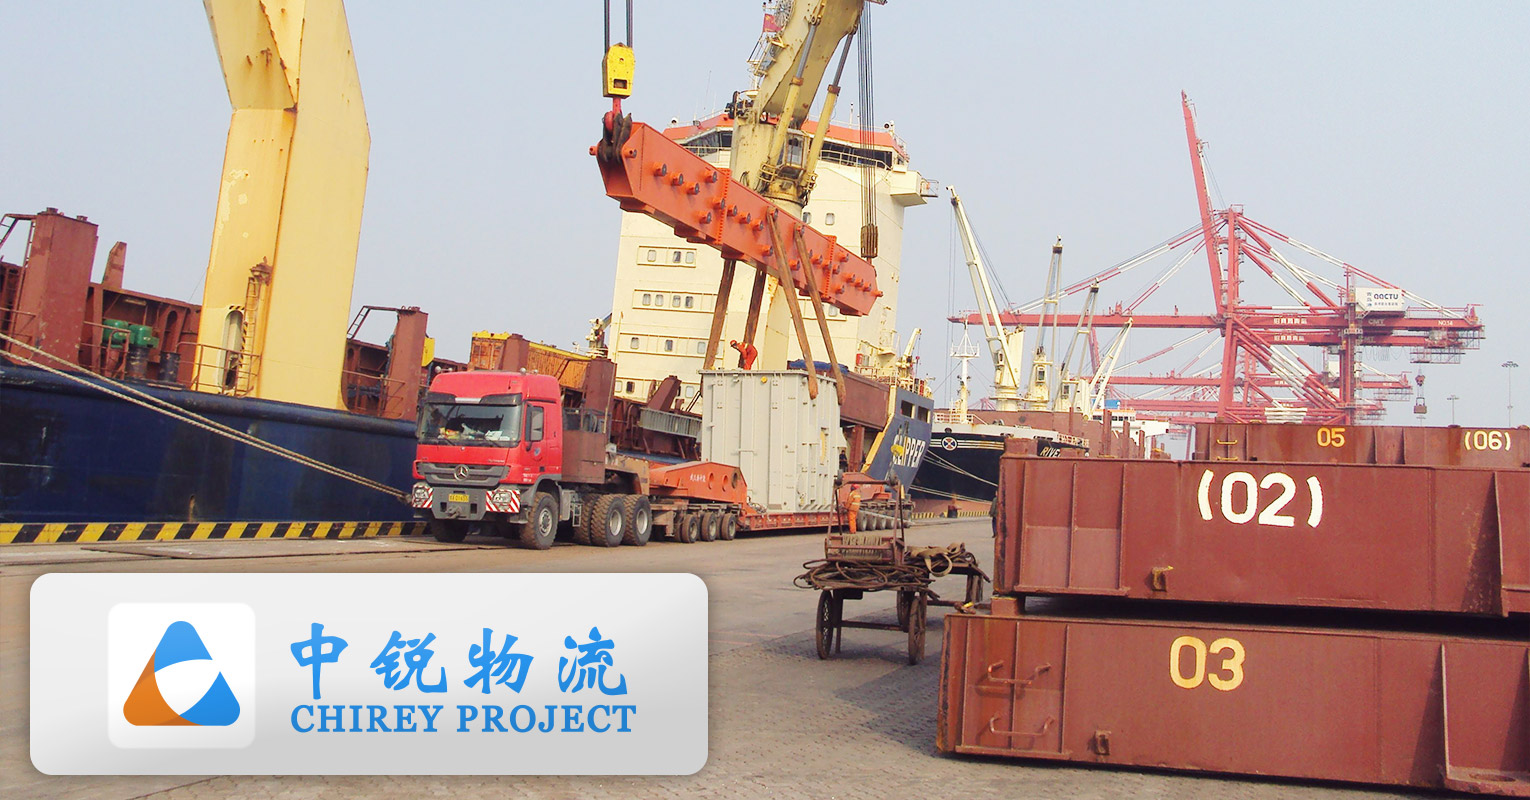 Chirey Projects handled a transformer